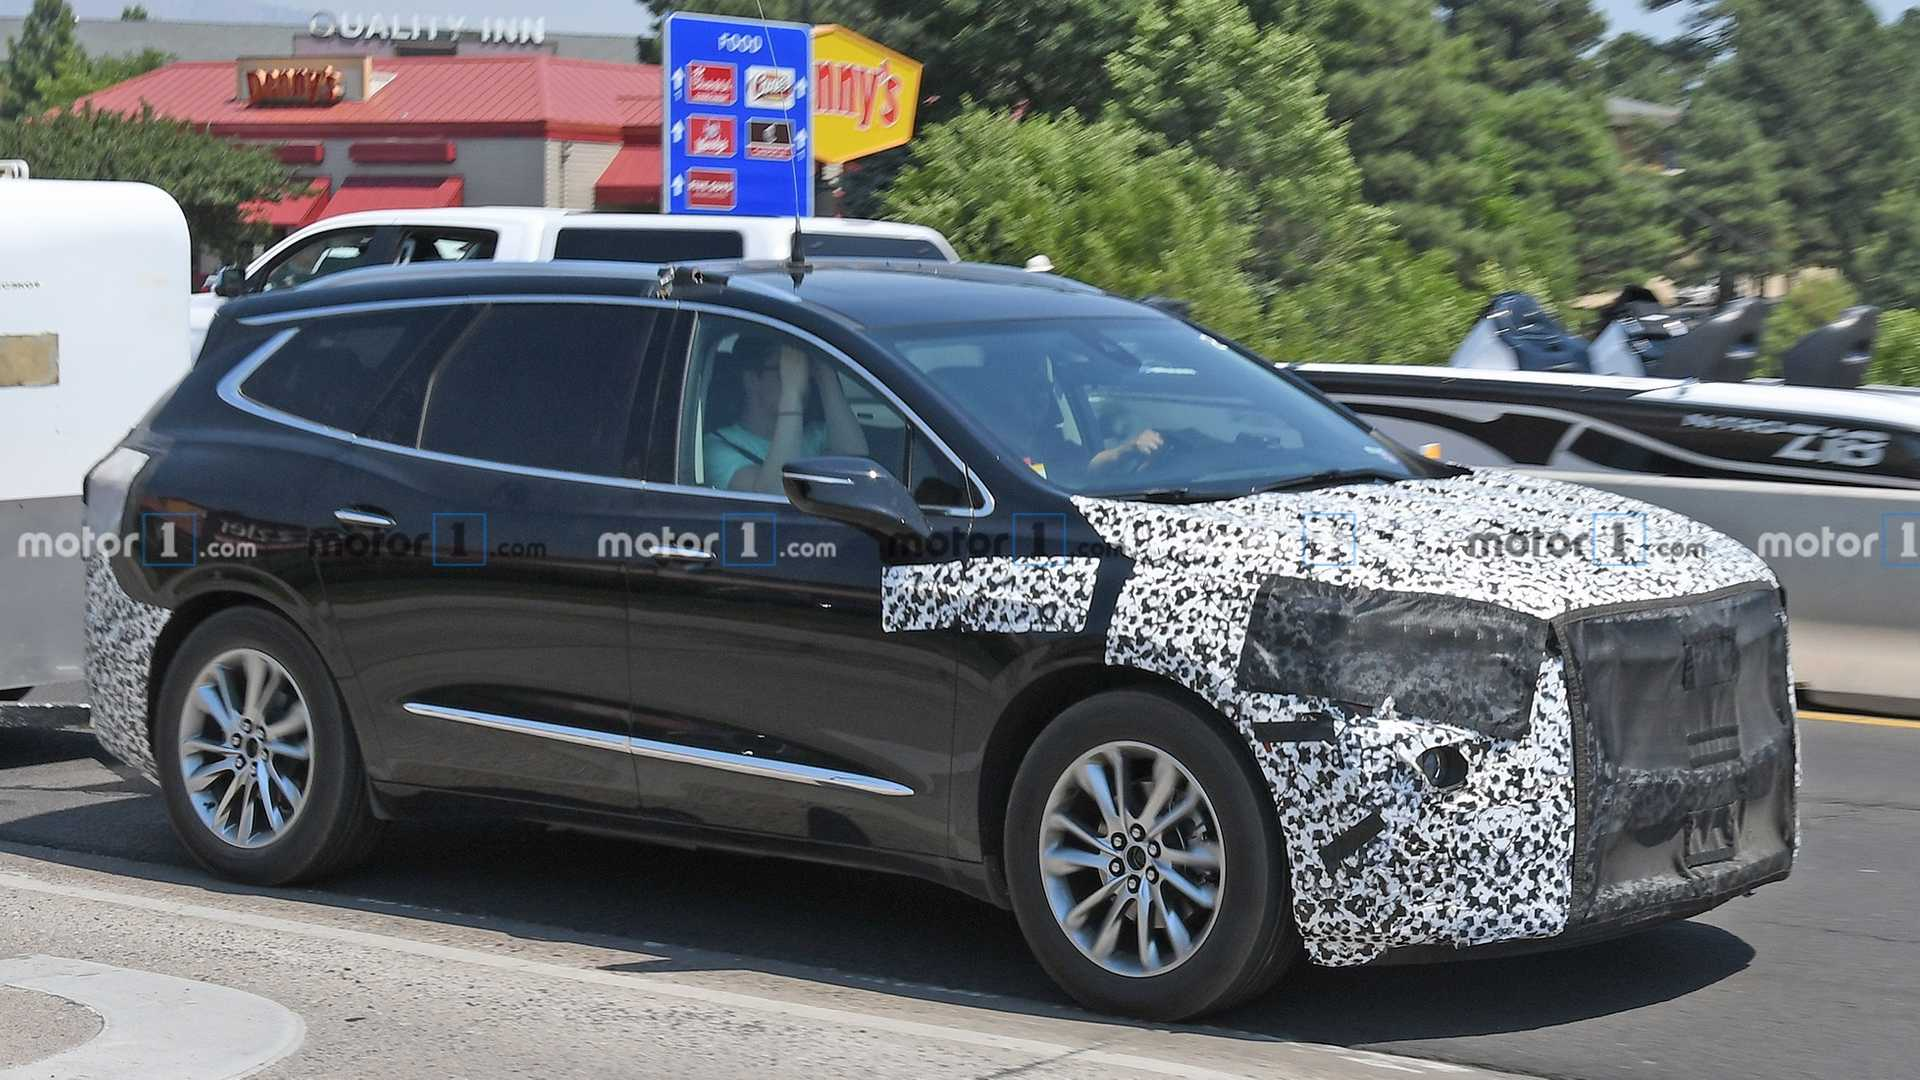 2018 Buick Enclave: Redesign, Styling, New Engines, Price >> 2021 Buick Enclave Spied For The First Time